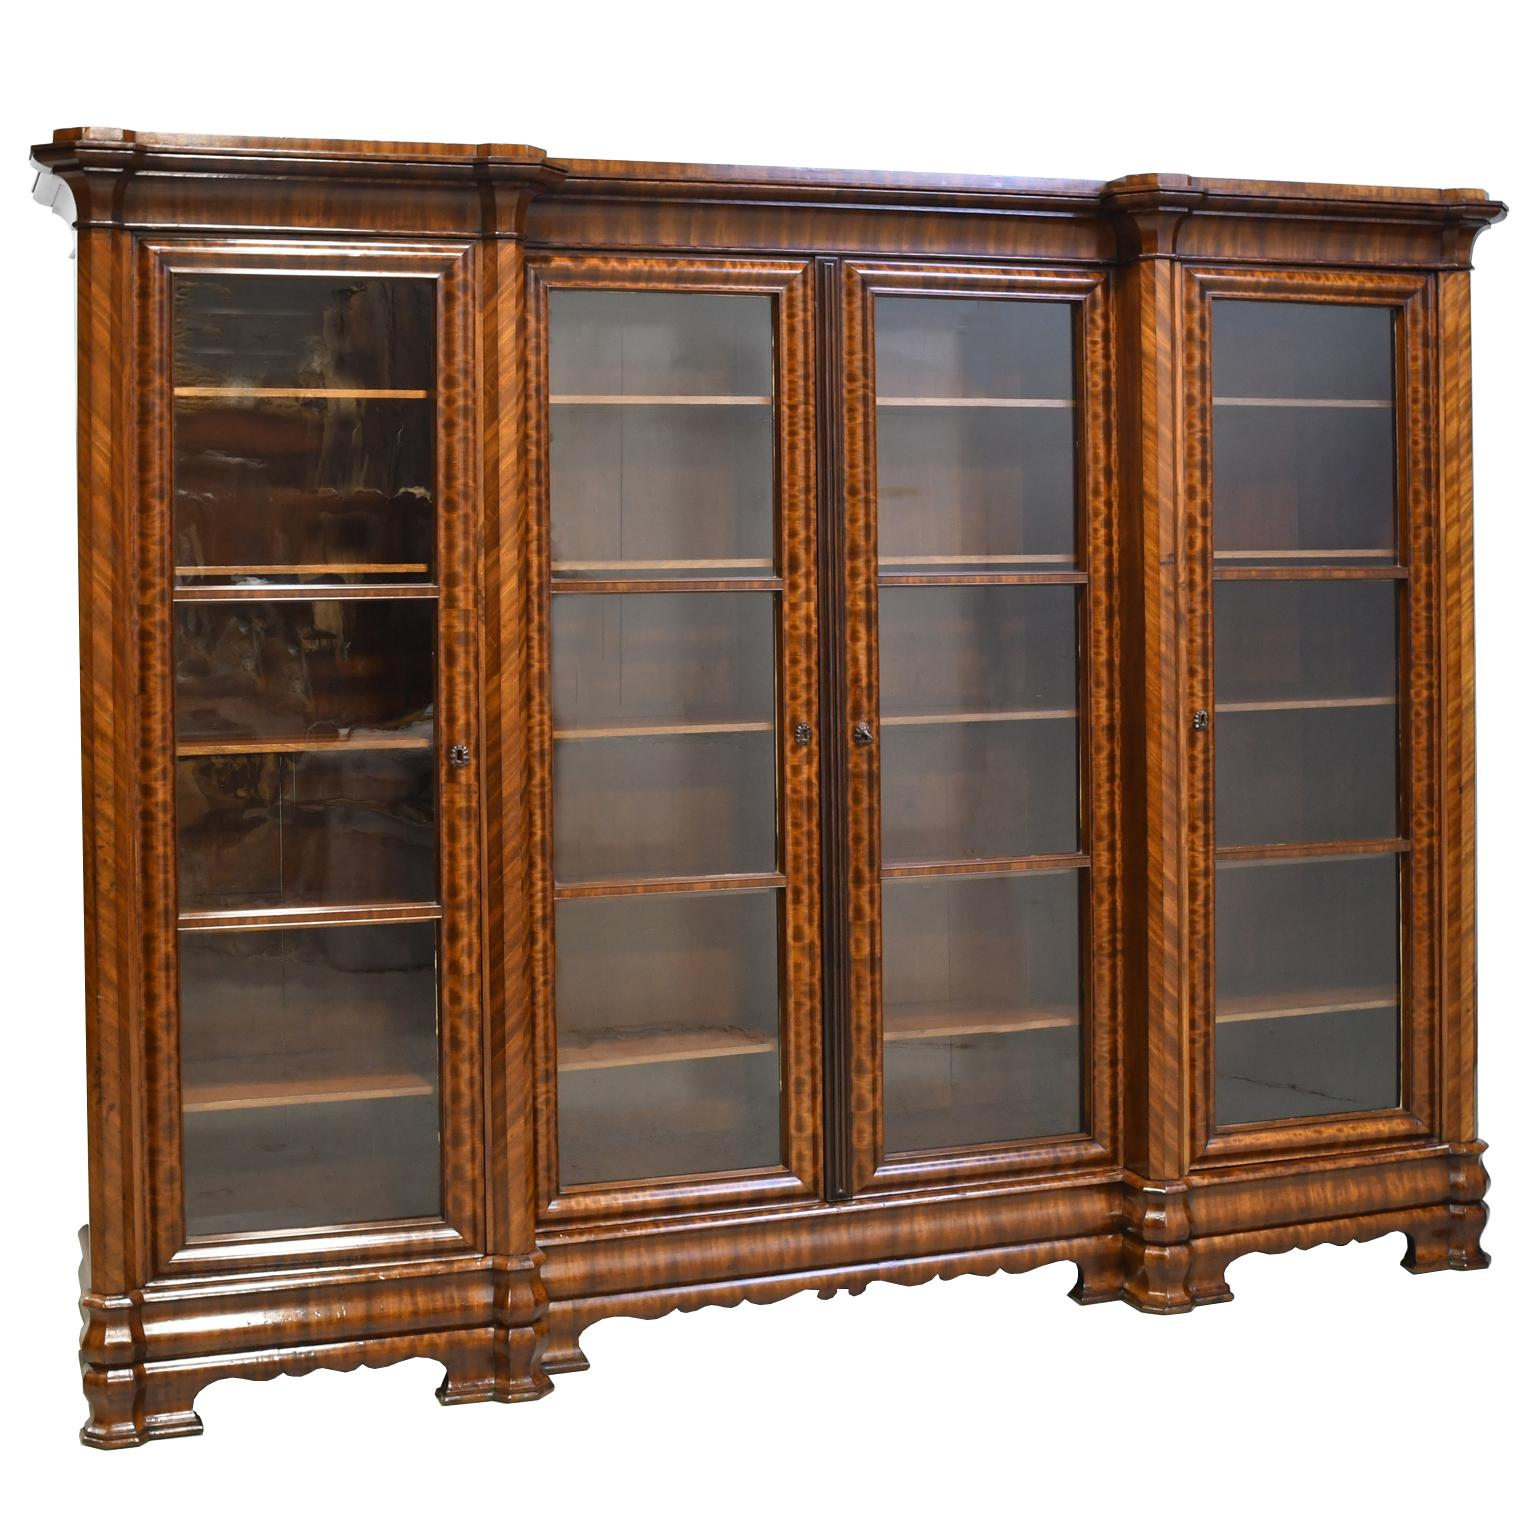 Long English William Iv Bookcase In Mahogany With Four Glass Doors Circa 1830